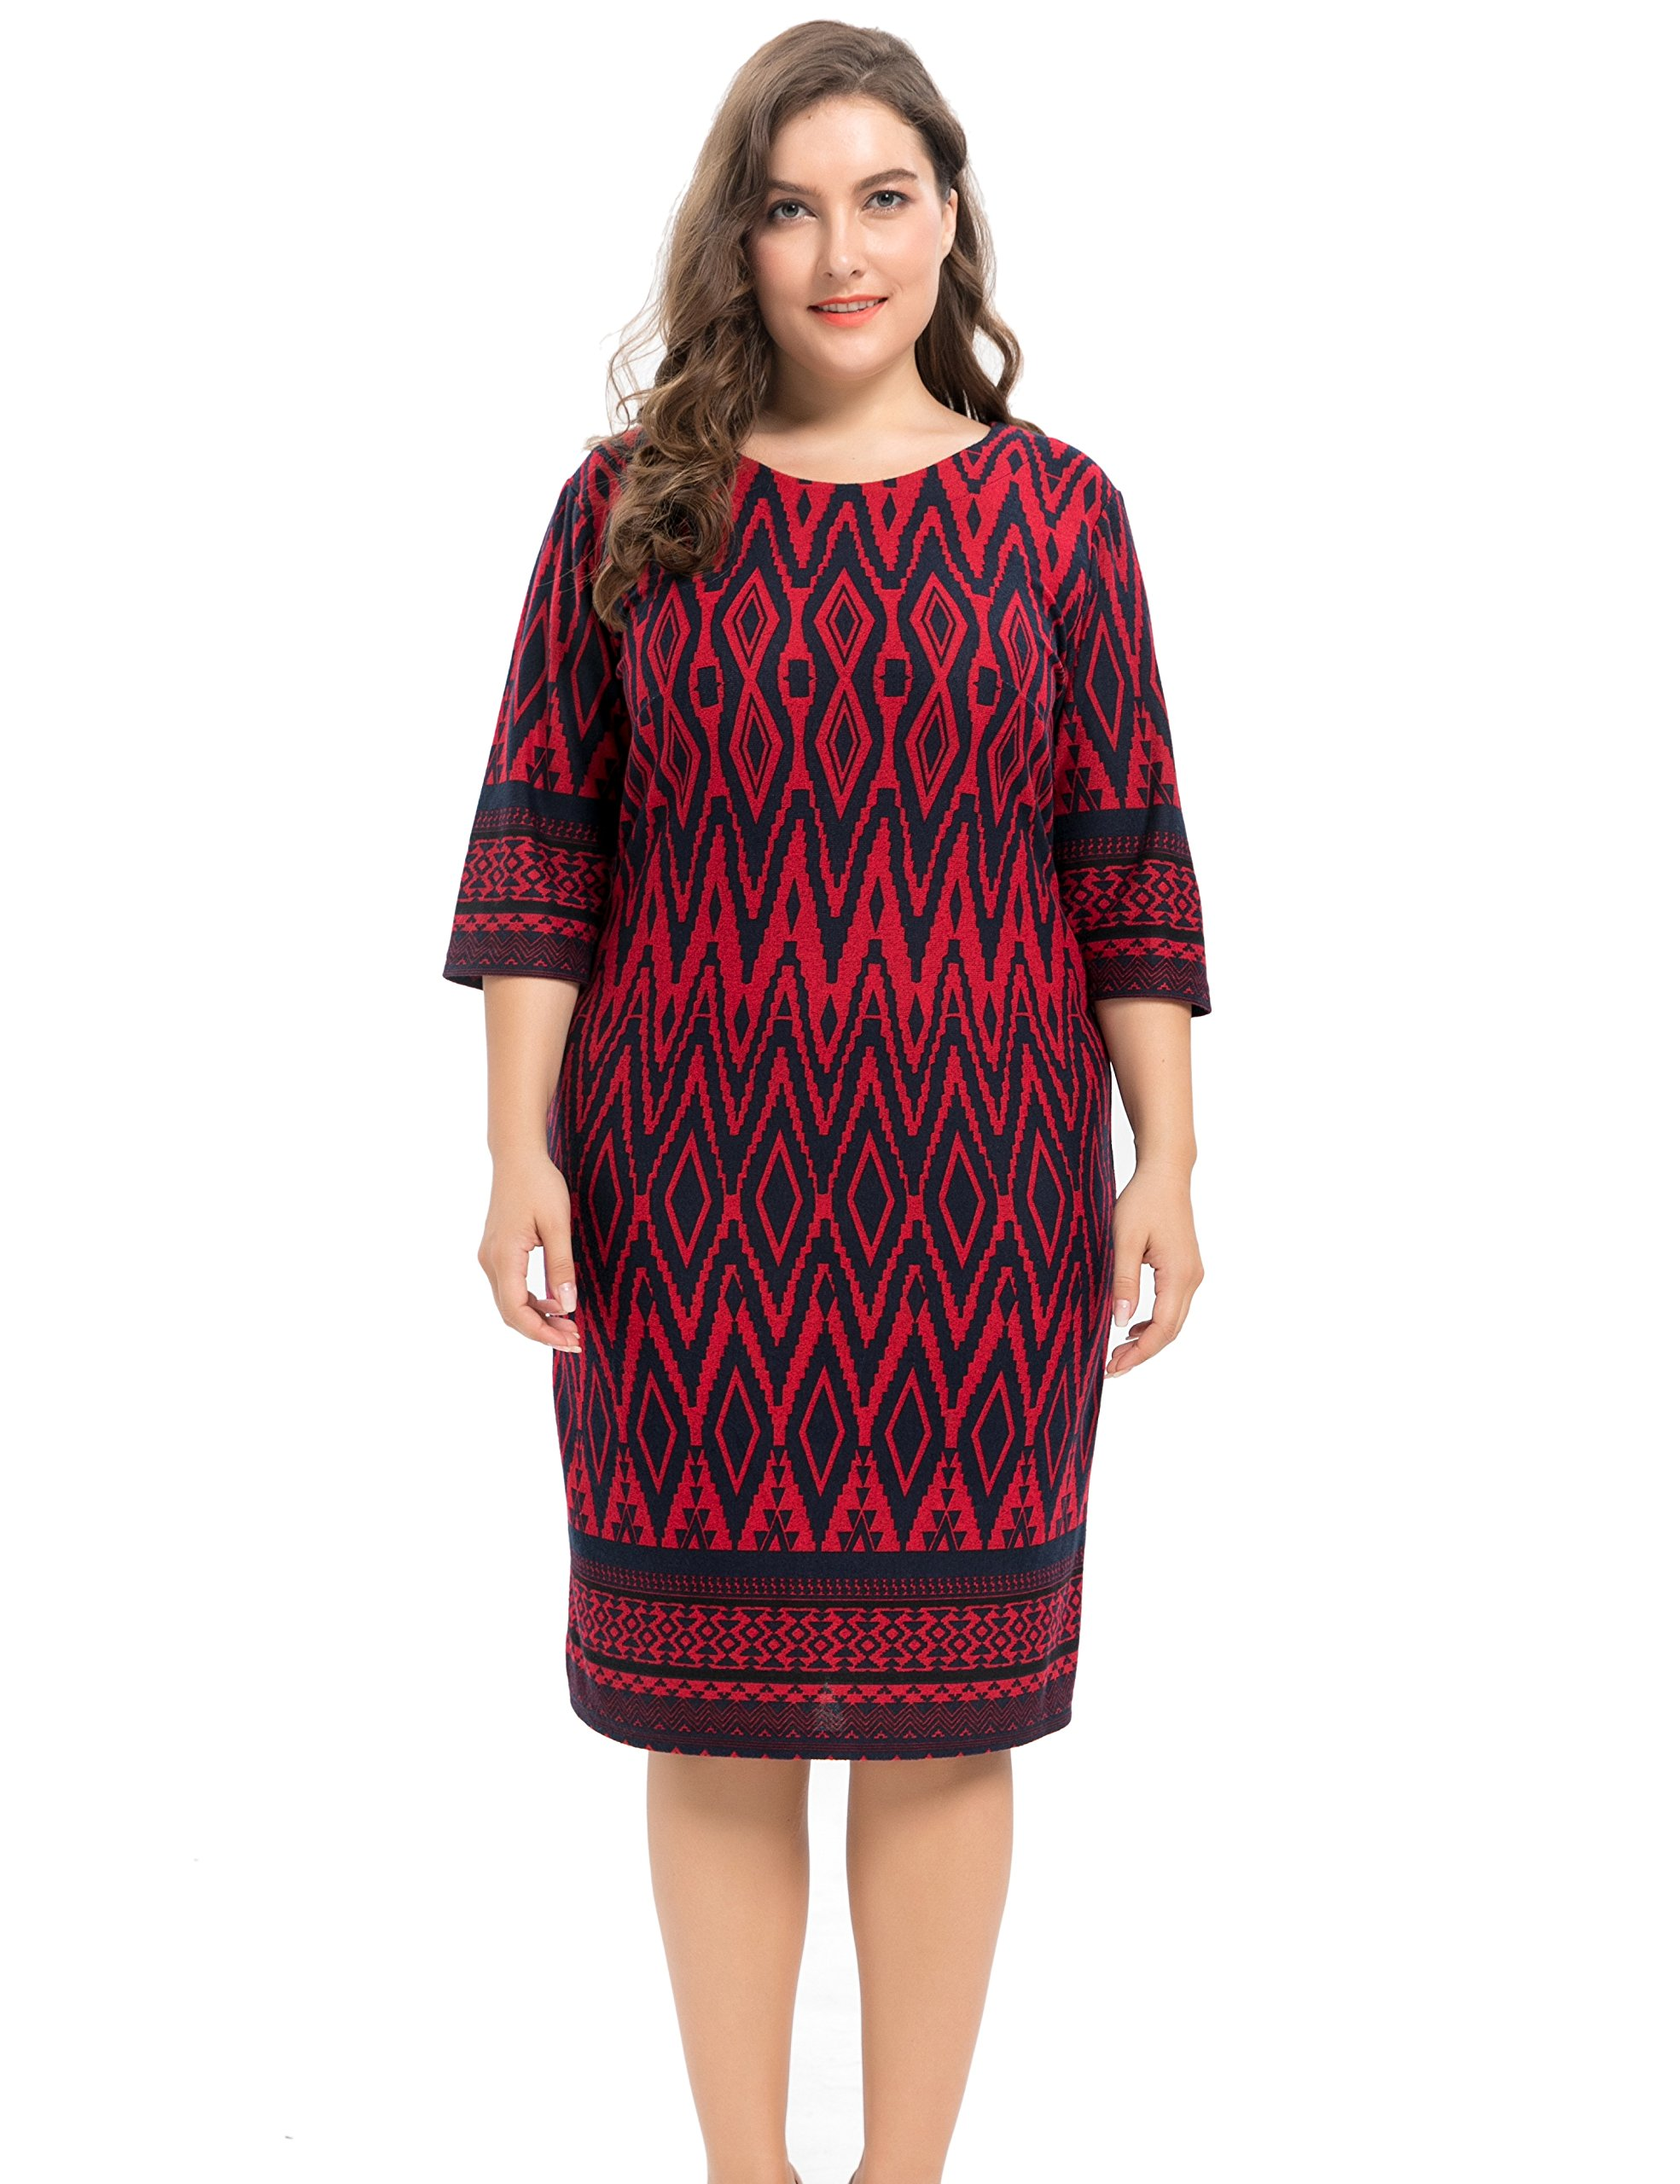 4b47205dd0 ... Friday/Chicwe Women's Plus Size Stretch Zigzag Printed Cashmere Touch  Shift Dress – Knee Length Casual and Work Dress Red 3X. ; 